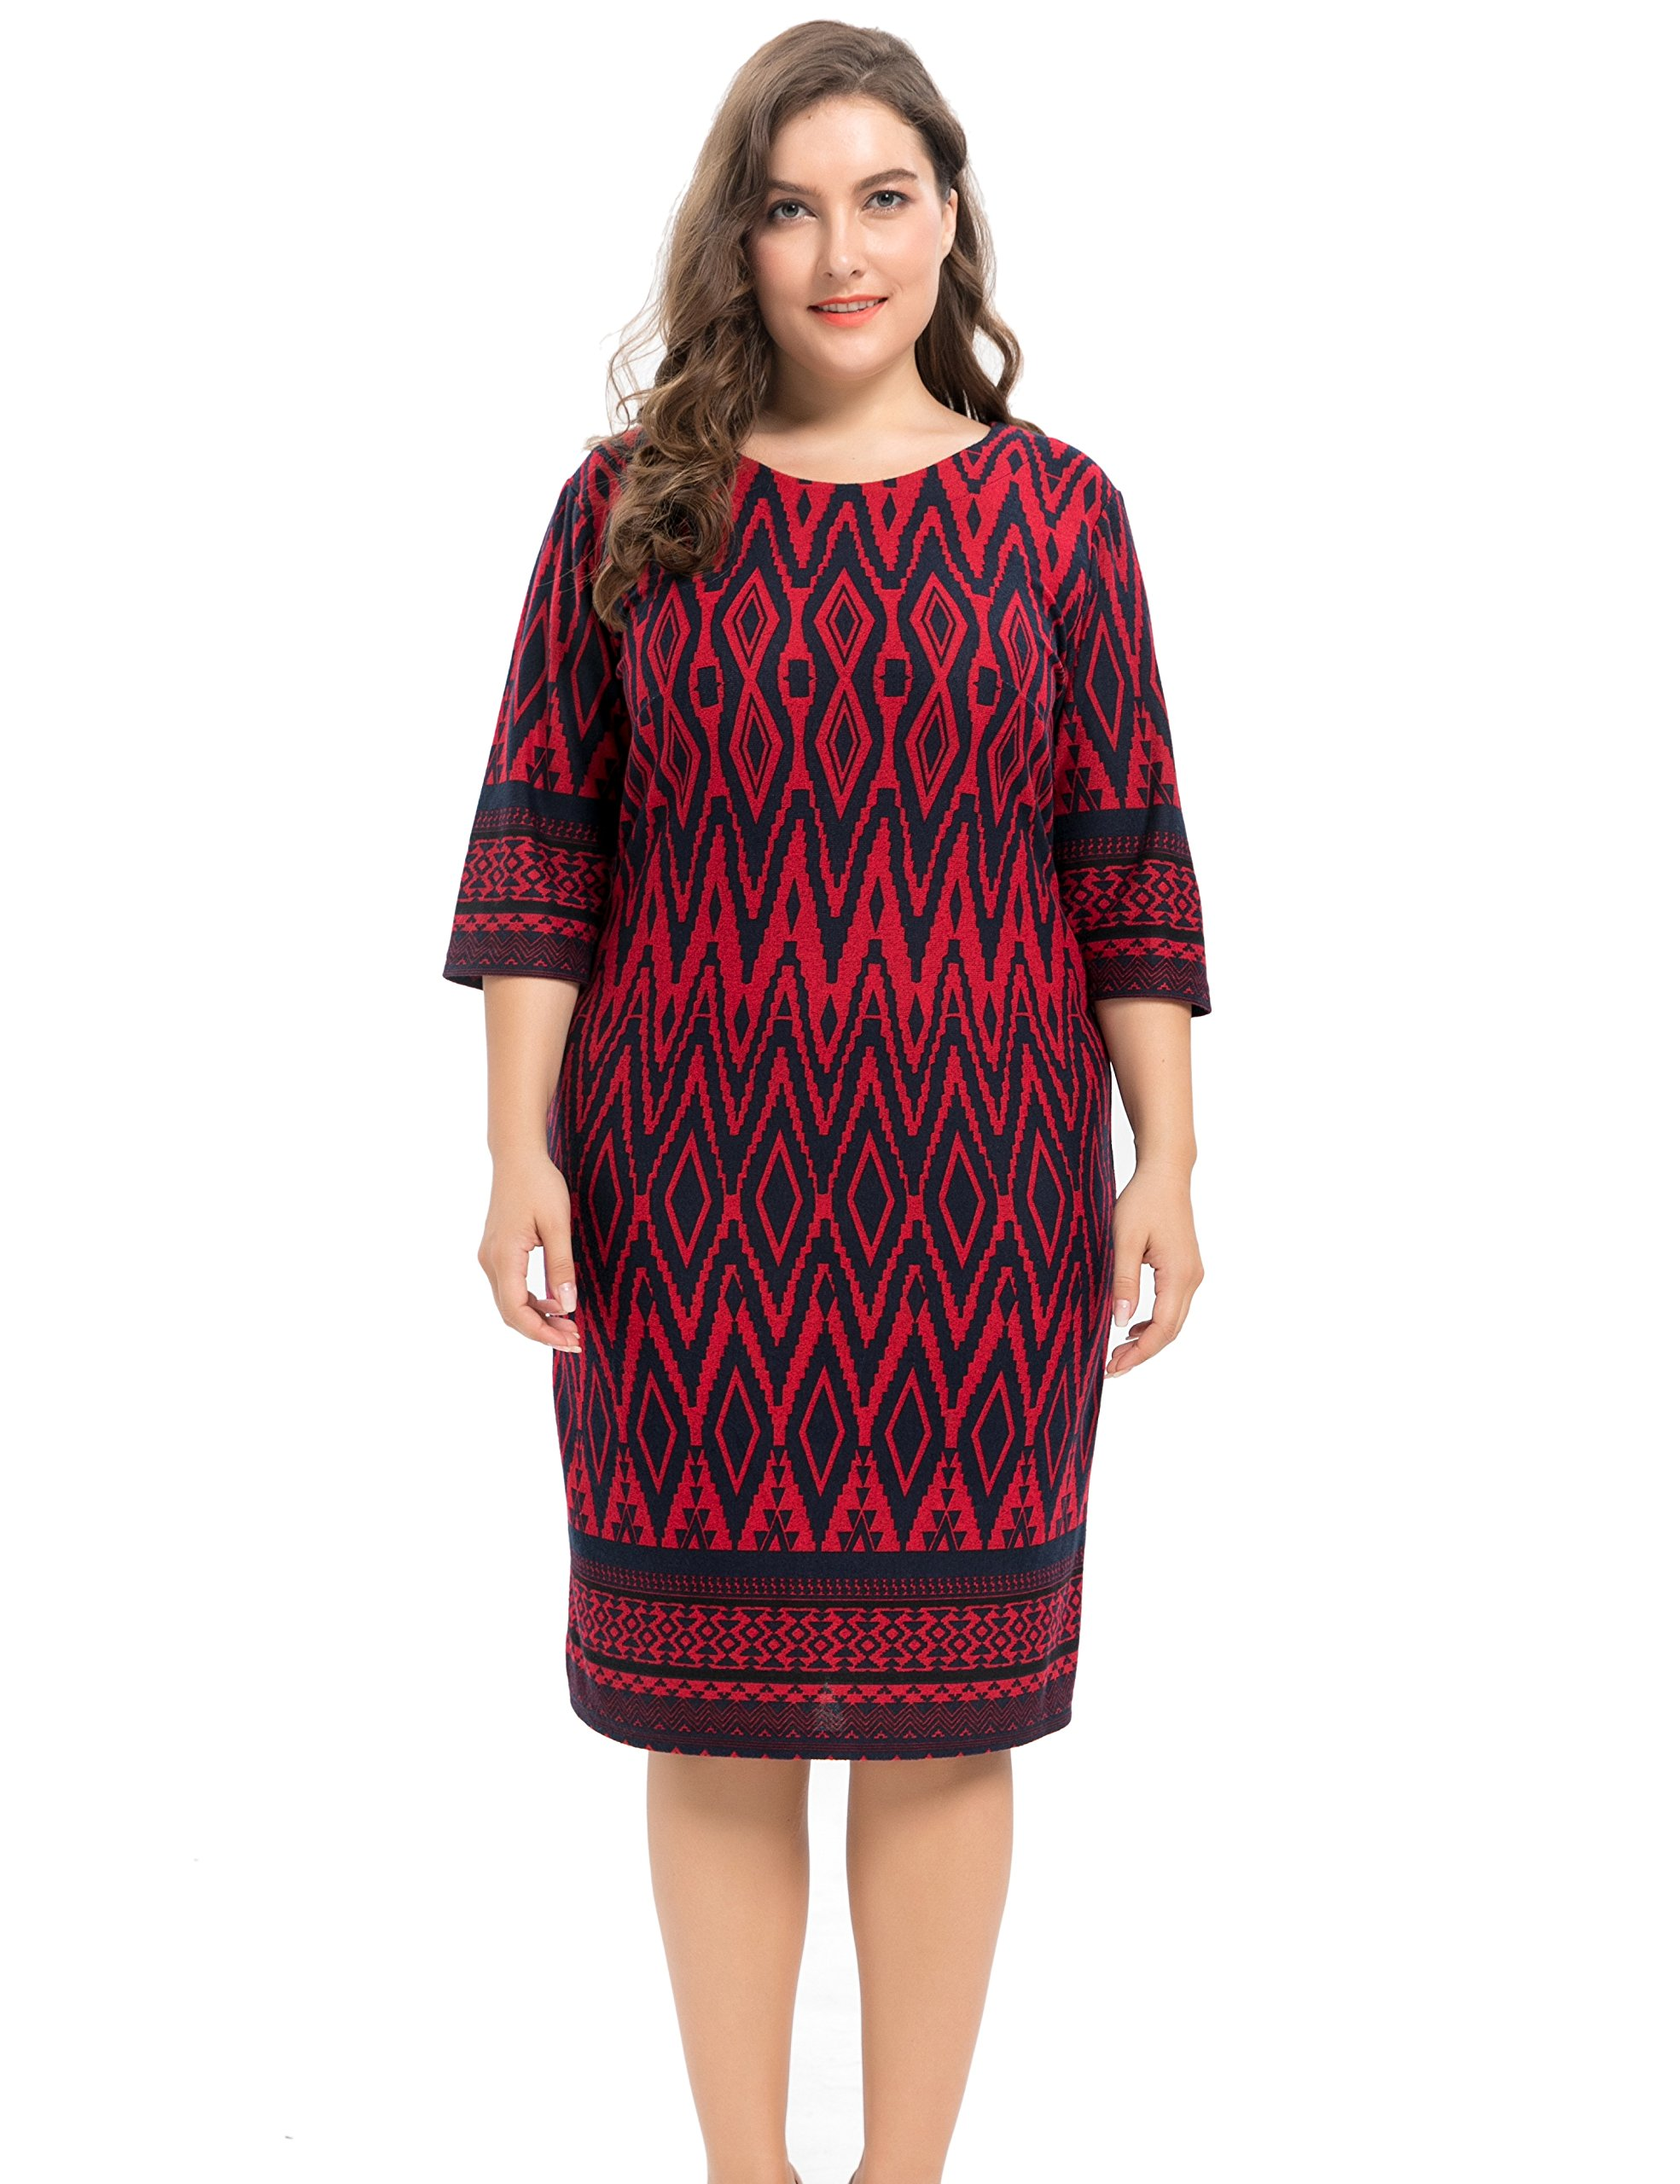 4b47205dd0 ... Friday/Chicwe Women's Plus Size Stretch Zigzag Printed Cashmere Touch  Shift Dress – Knee Length Casual and Work Dress Red 3X. ; 